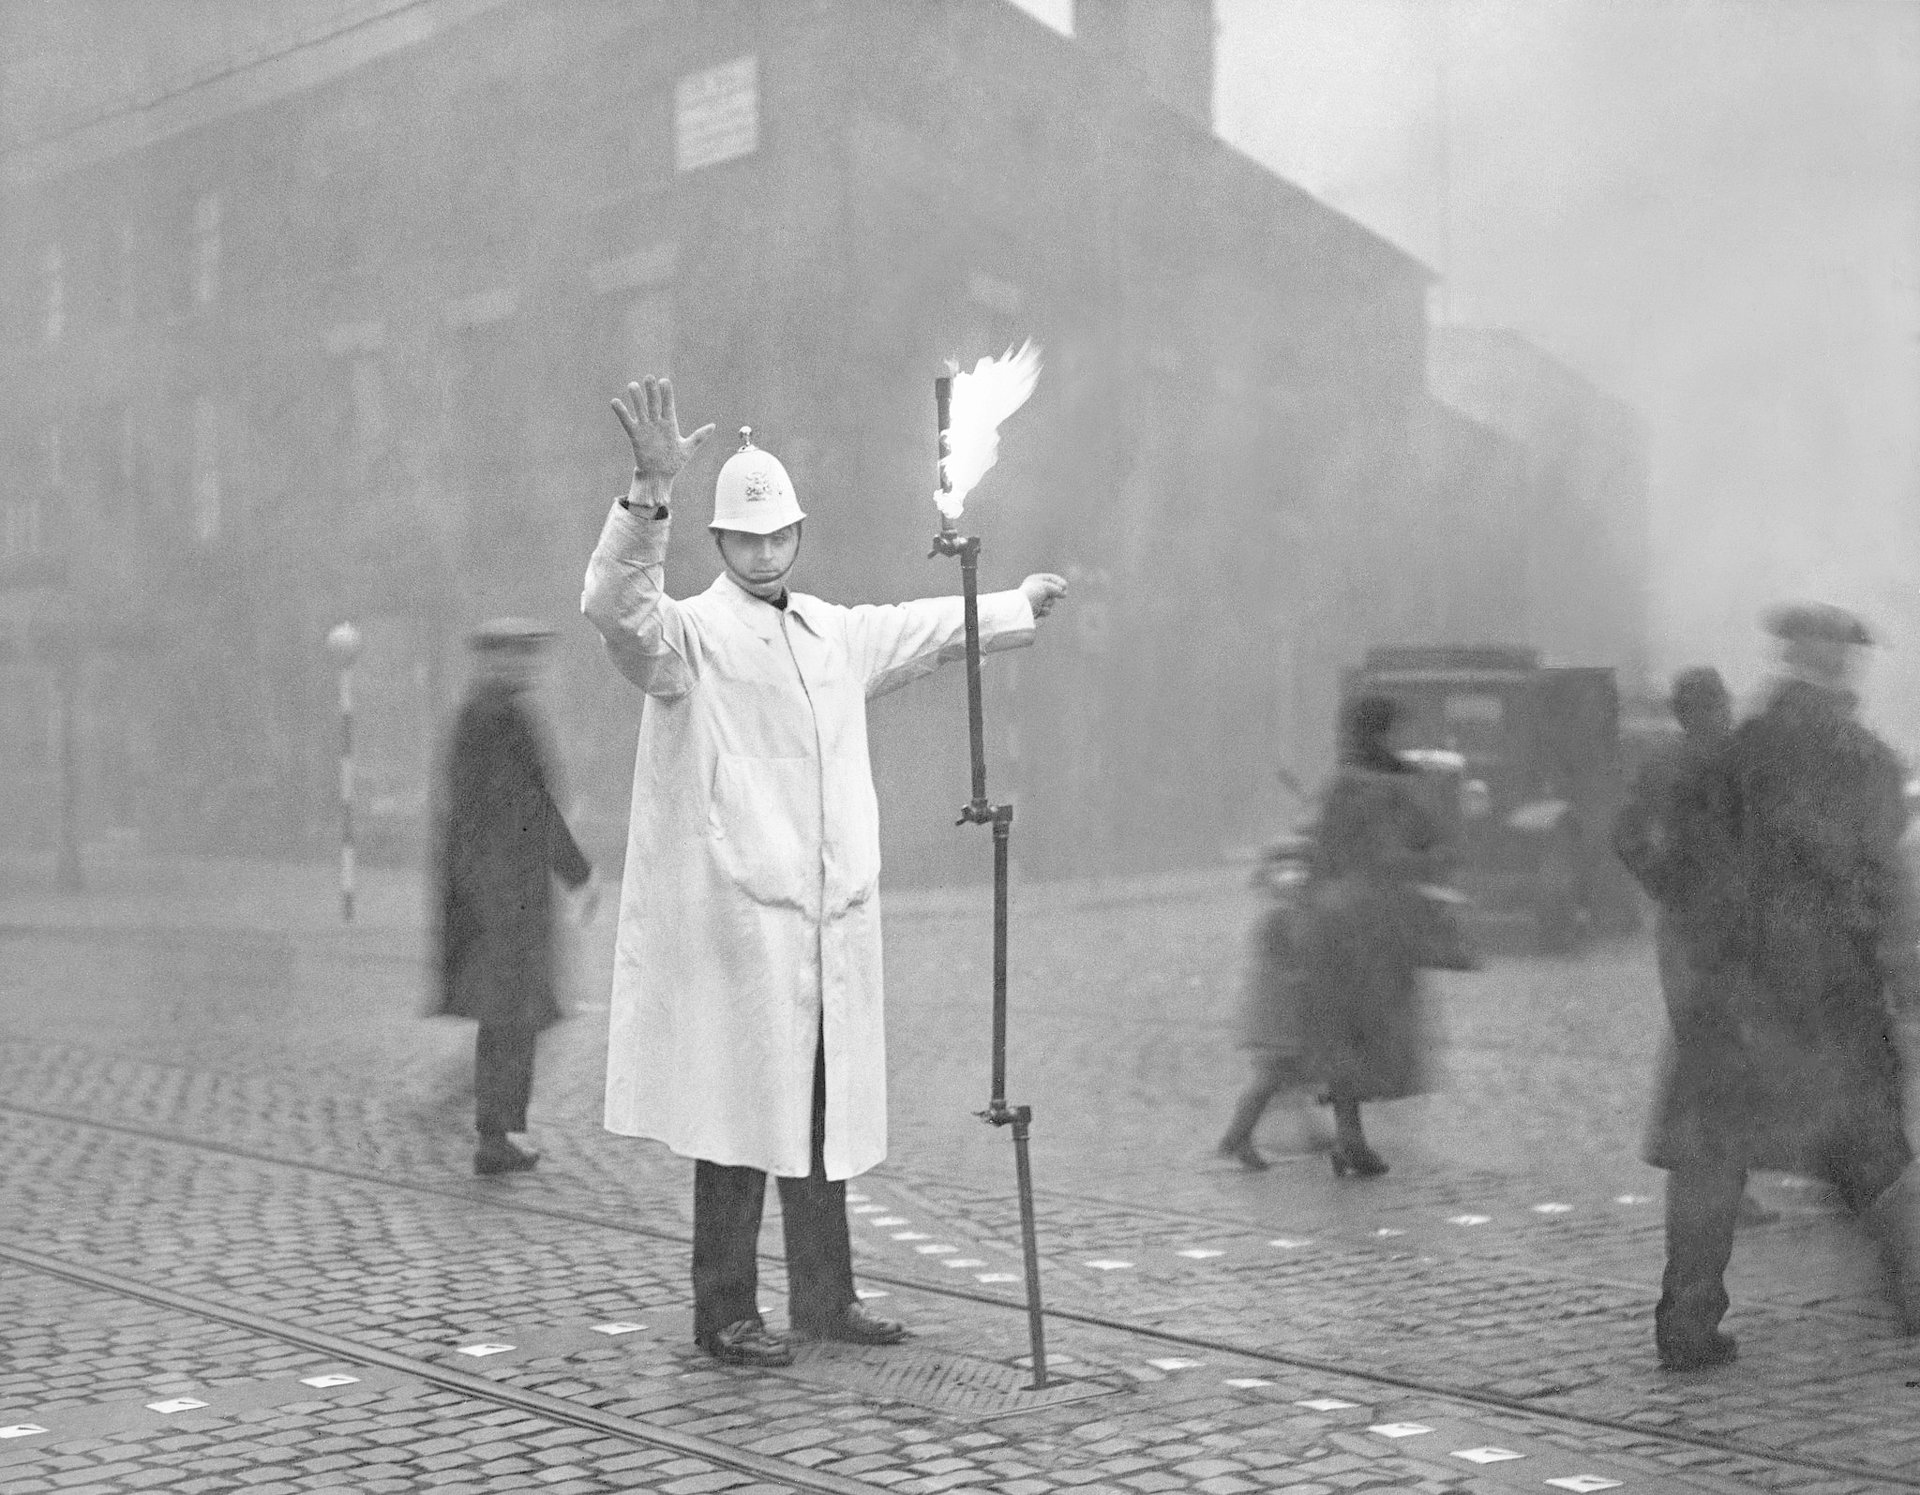 A street traffic police with a torch